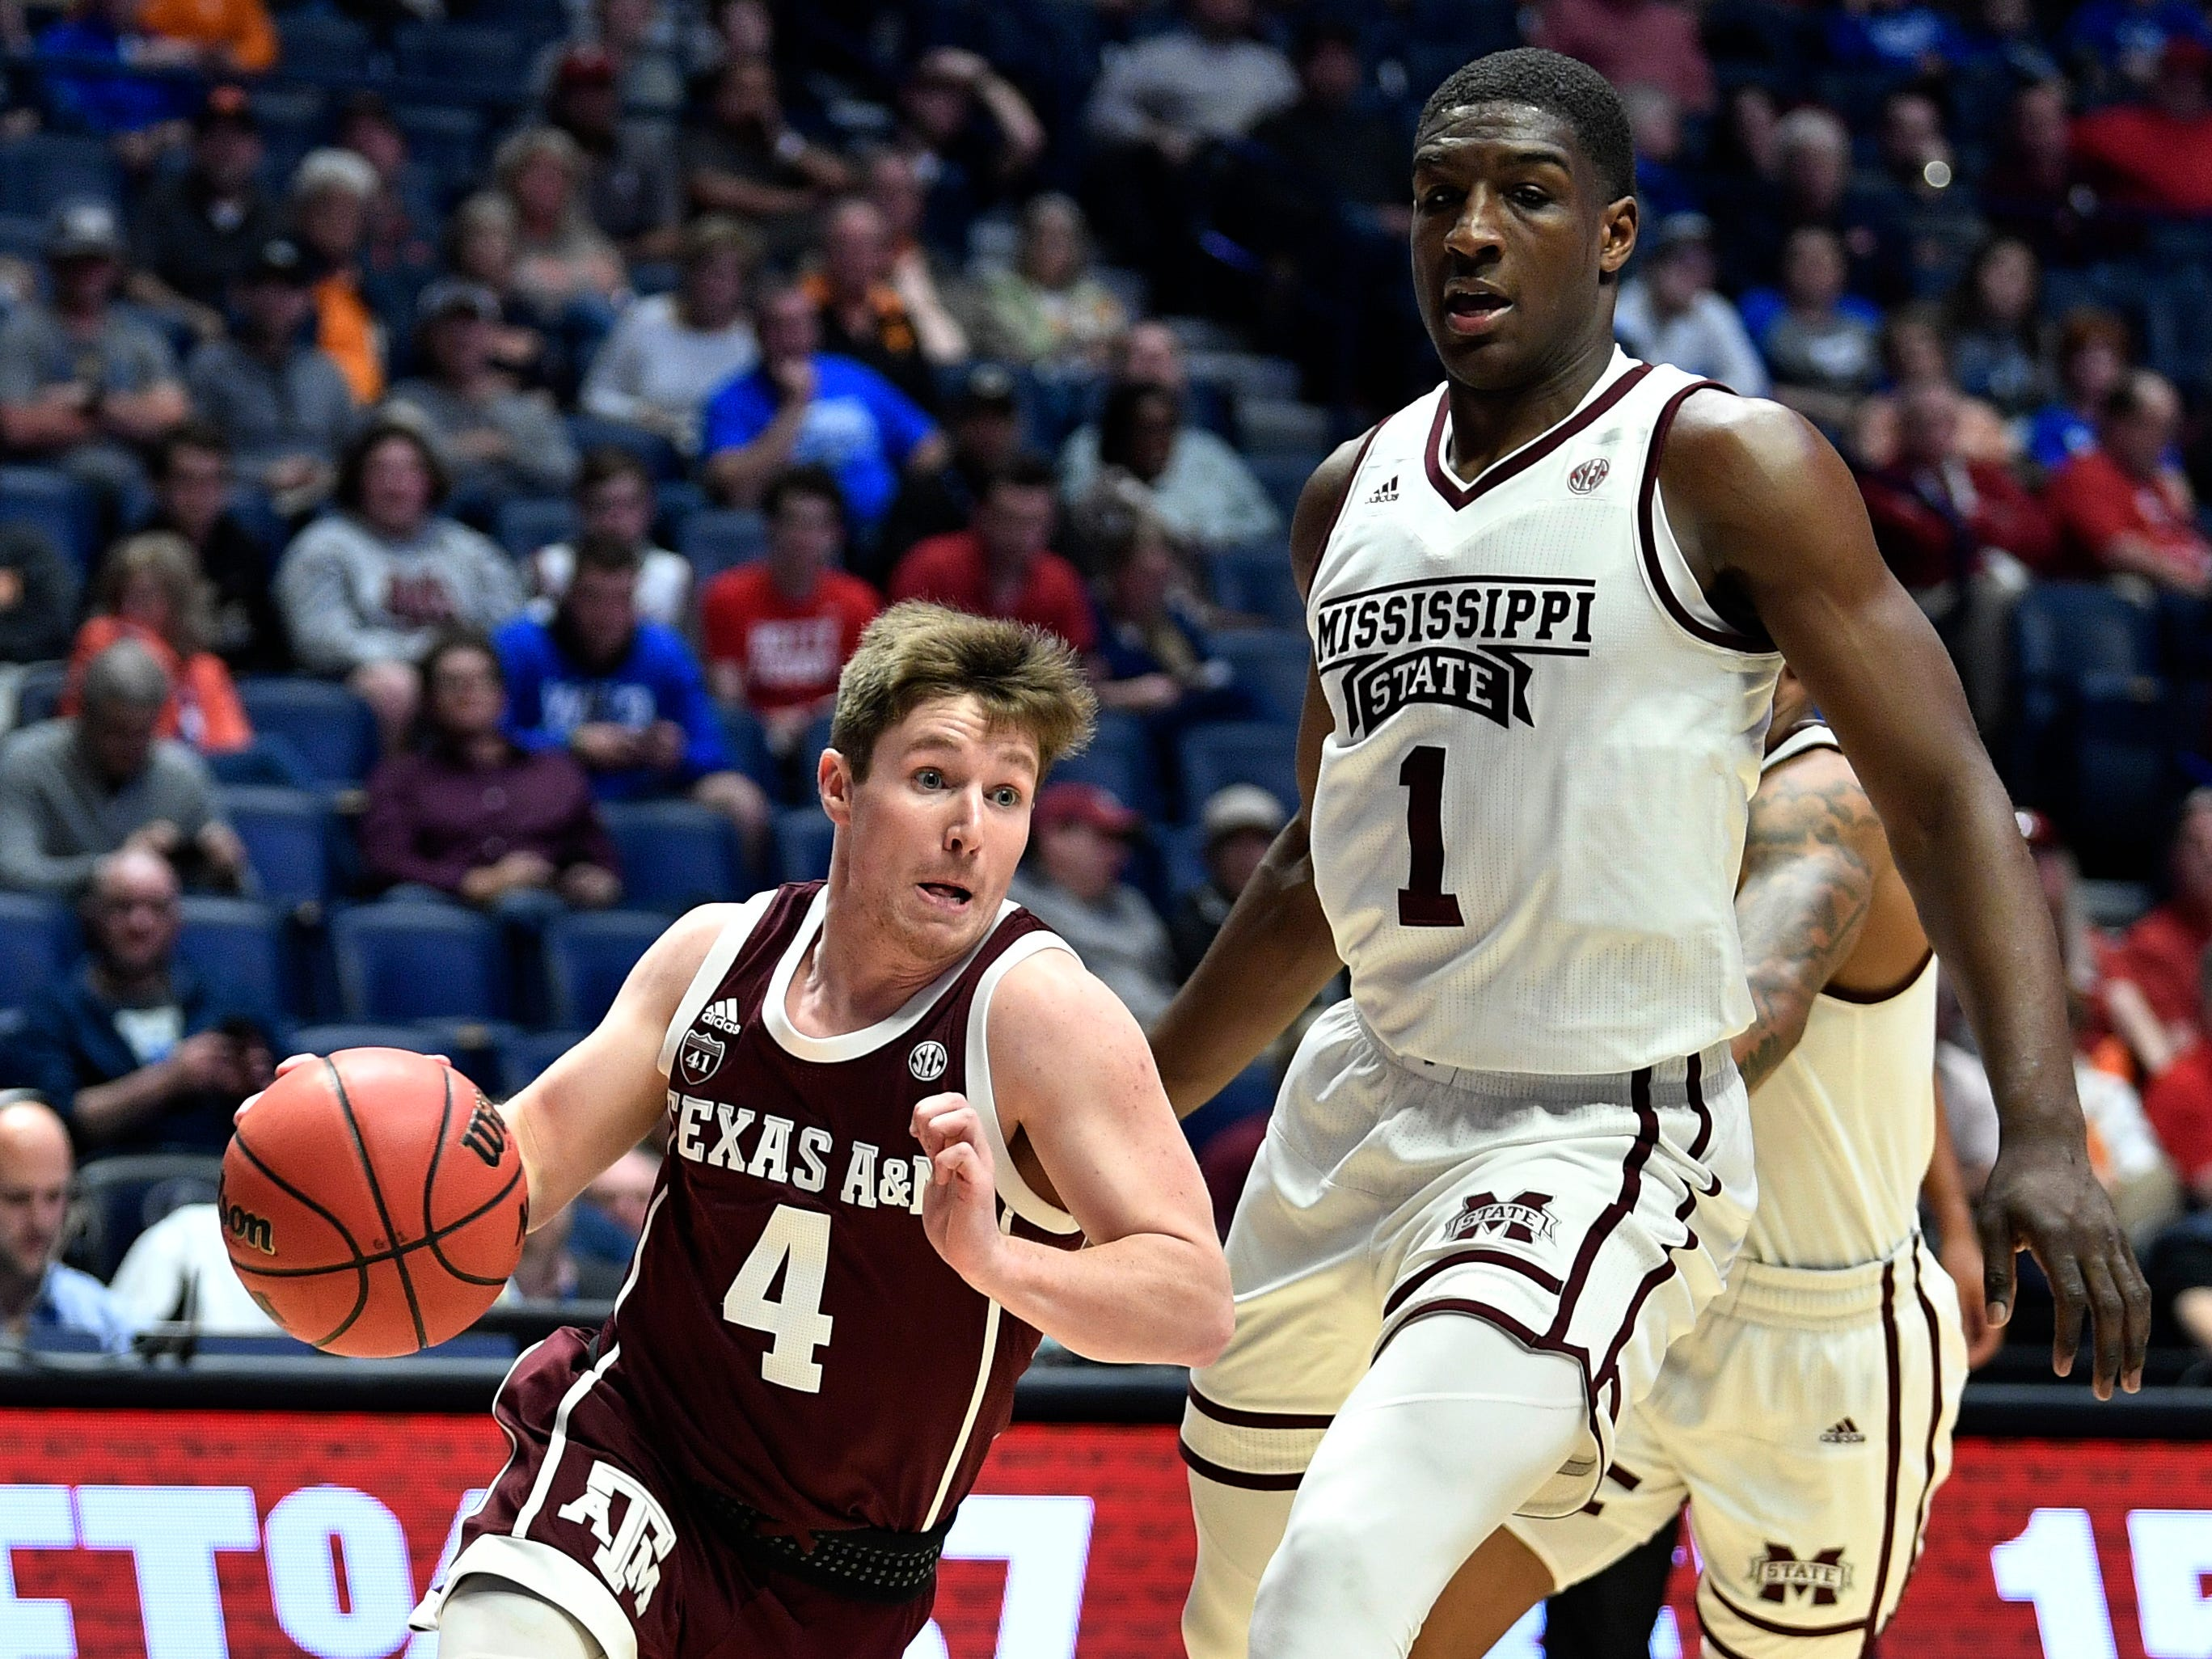 Texas A&M guard Mark French (4) moves the ball defended by Mississippi State forward Reggie Perry (1) during the first half of the SEC Men's Basketball Tournament game at Bridgestone Arena in Nashville, Tenn., Thursday, March 14, 2019.